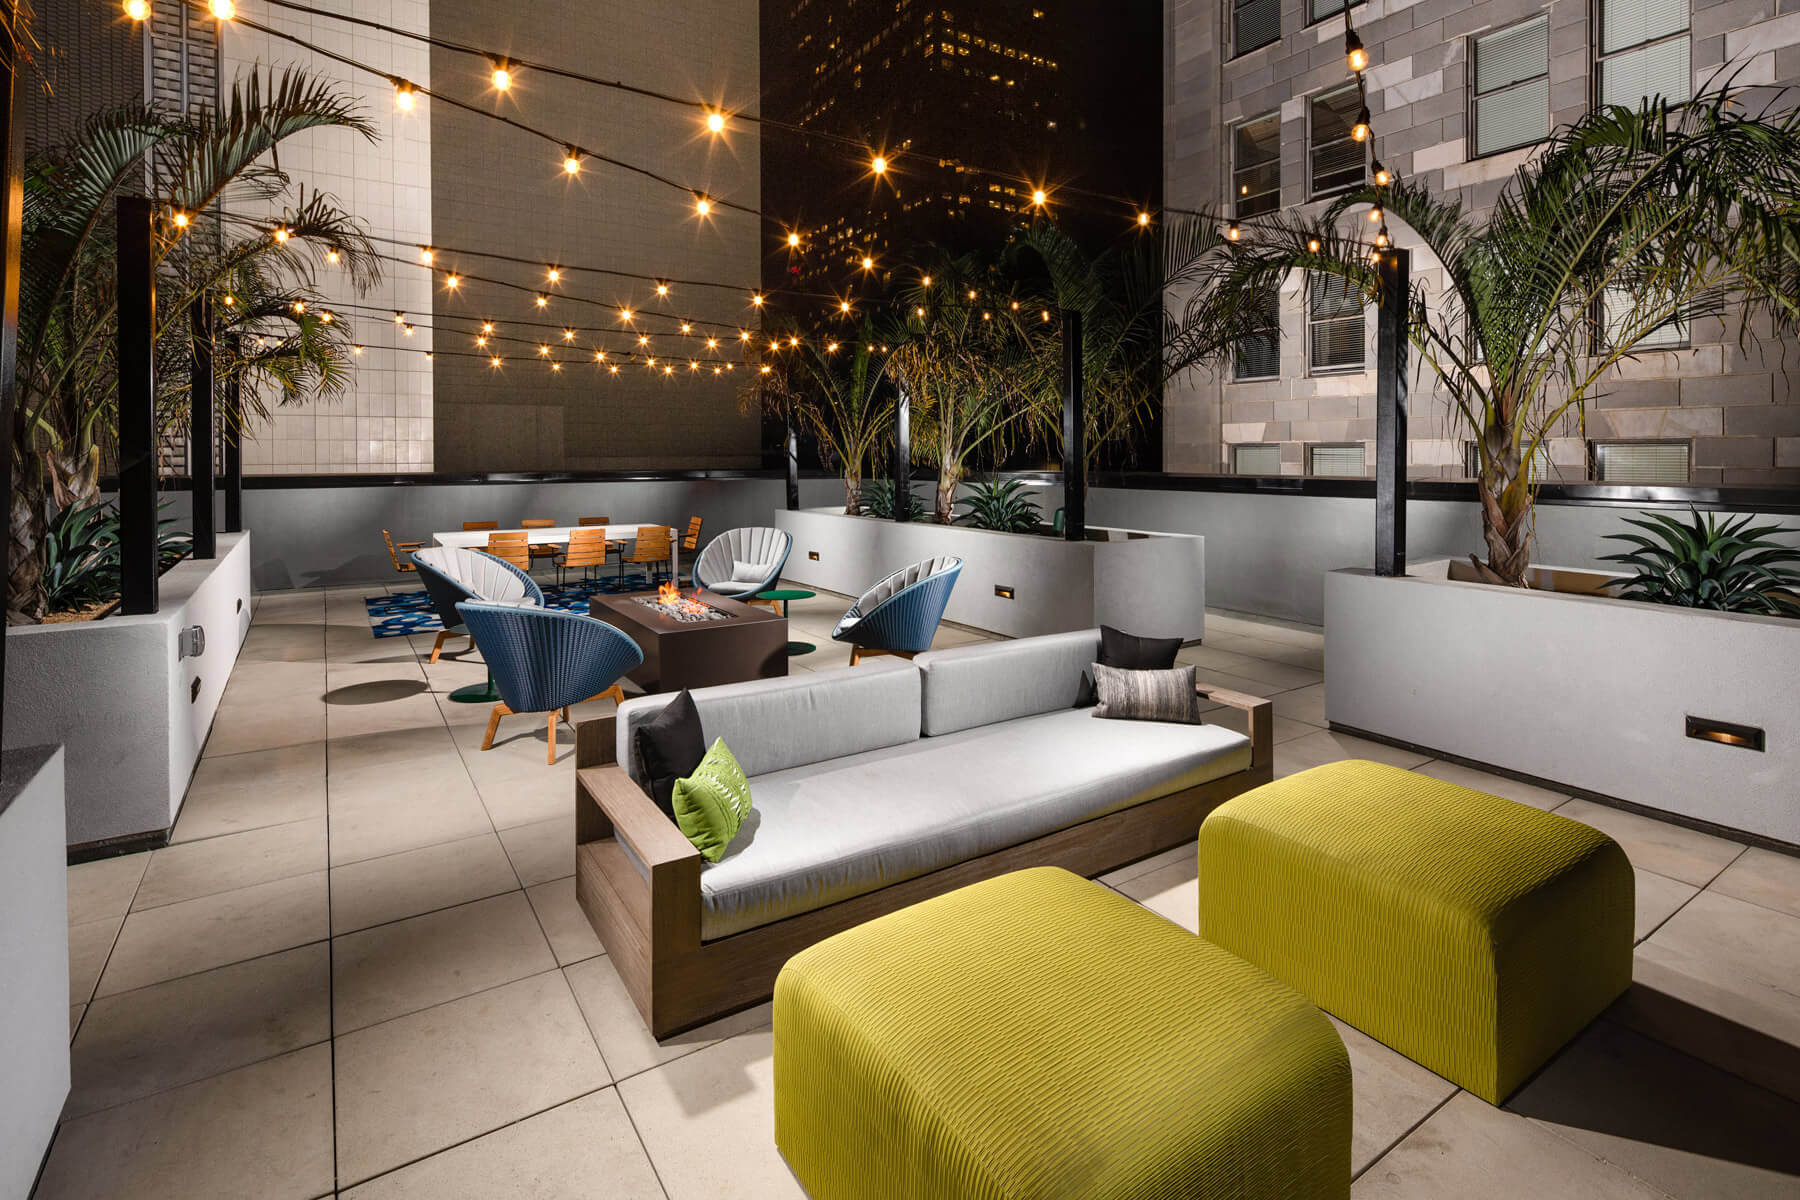 Apartments for Rent in Downtown Los Angeles CA - Beautiful Rooftop Lounge With String Lighting, Firepit Surrounded by Plush Outdoor Seating, and Gorgeous View of Los Angeles Skyline.